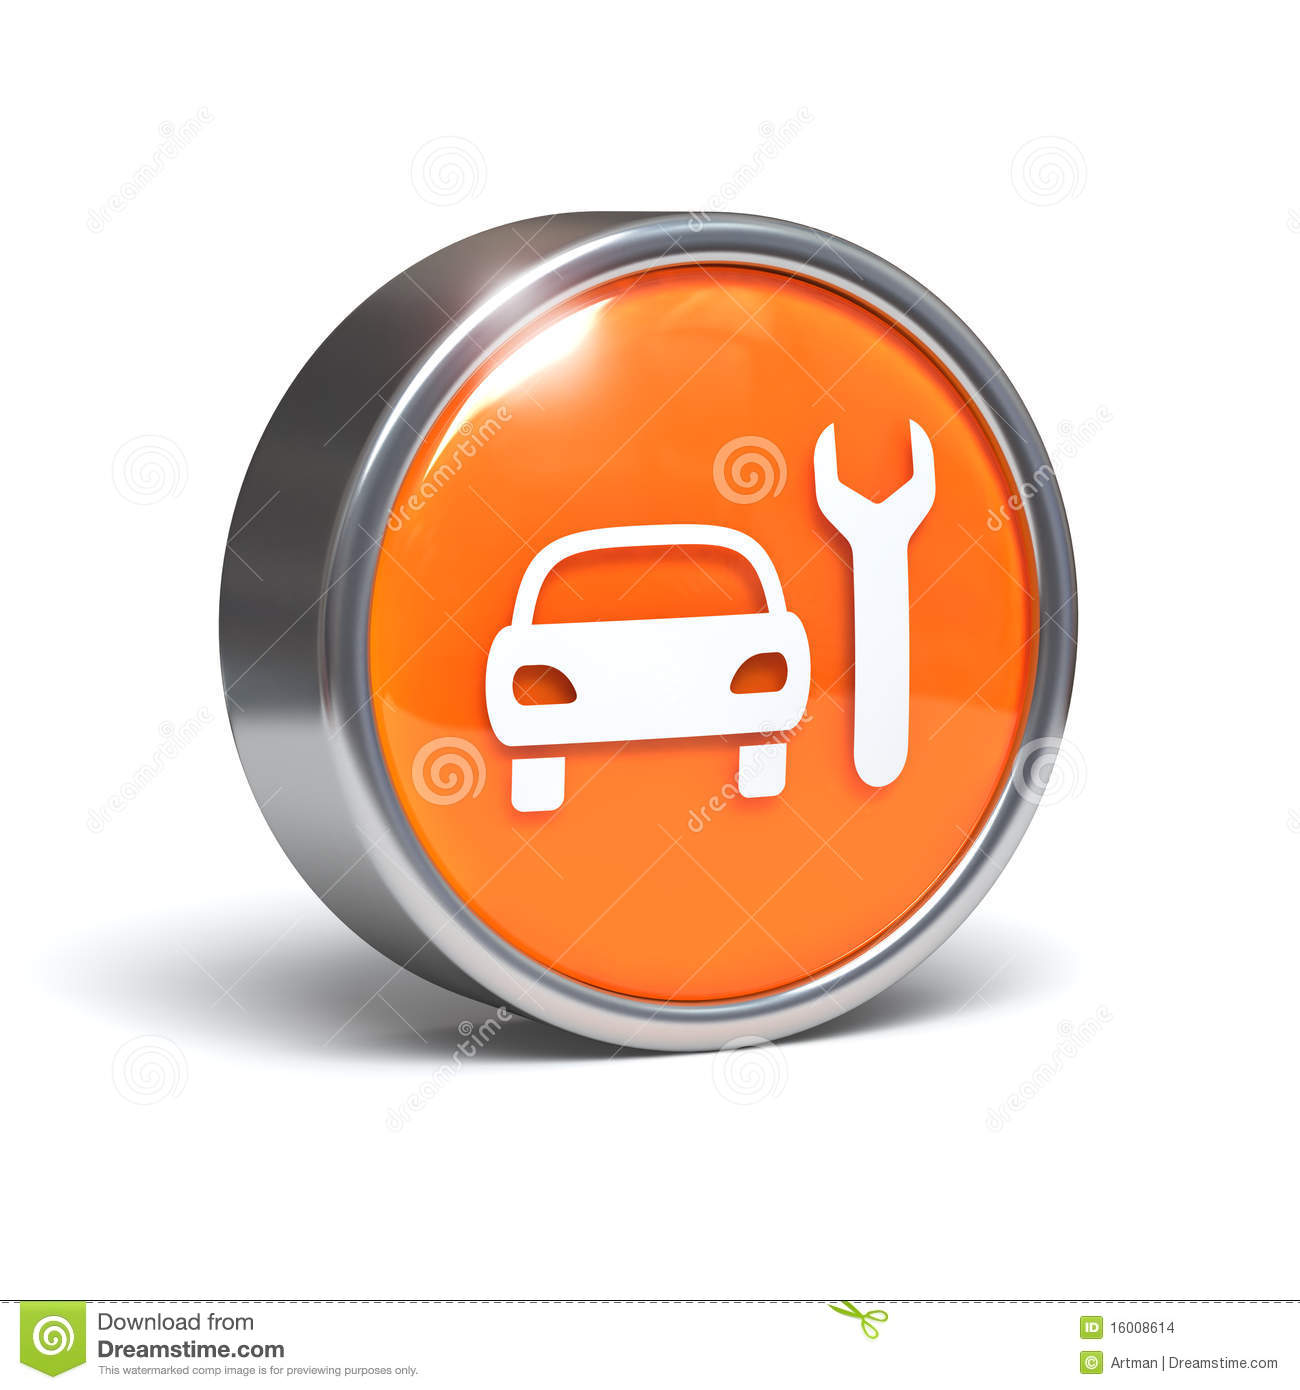 car service icon 3d button stock illustration illustration of diagnostics automotive 16008614. Black Bedroom Furniture Sets. Home Design Ideas